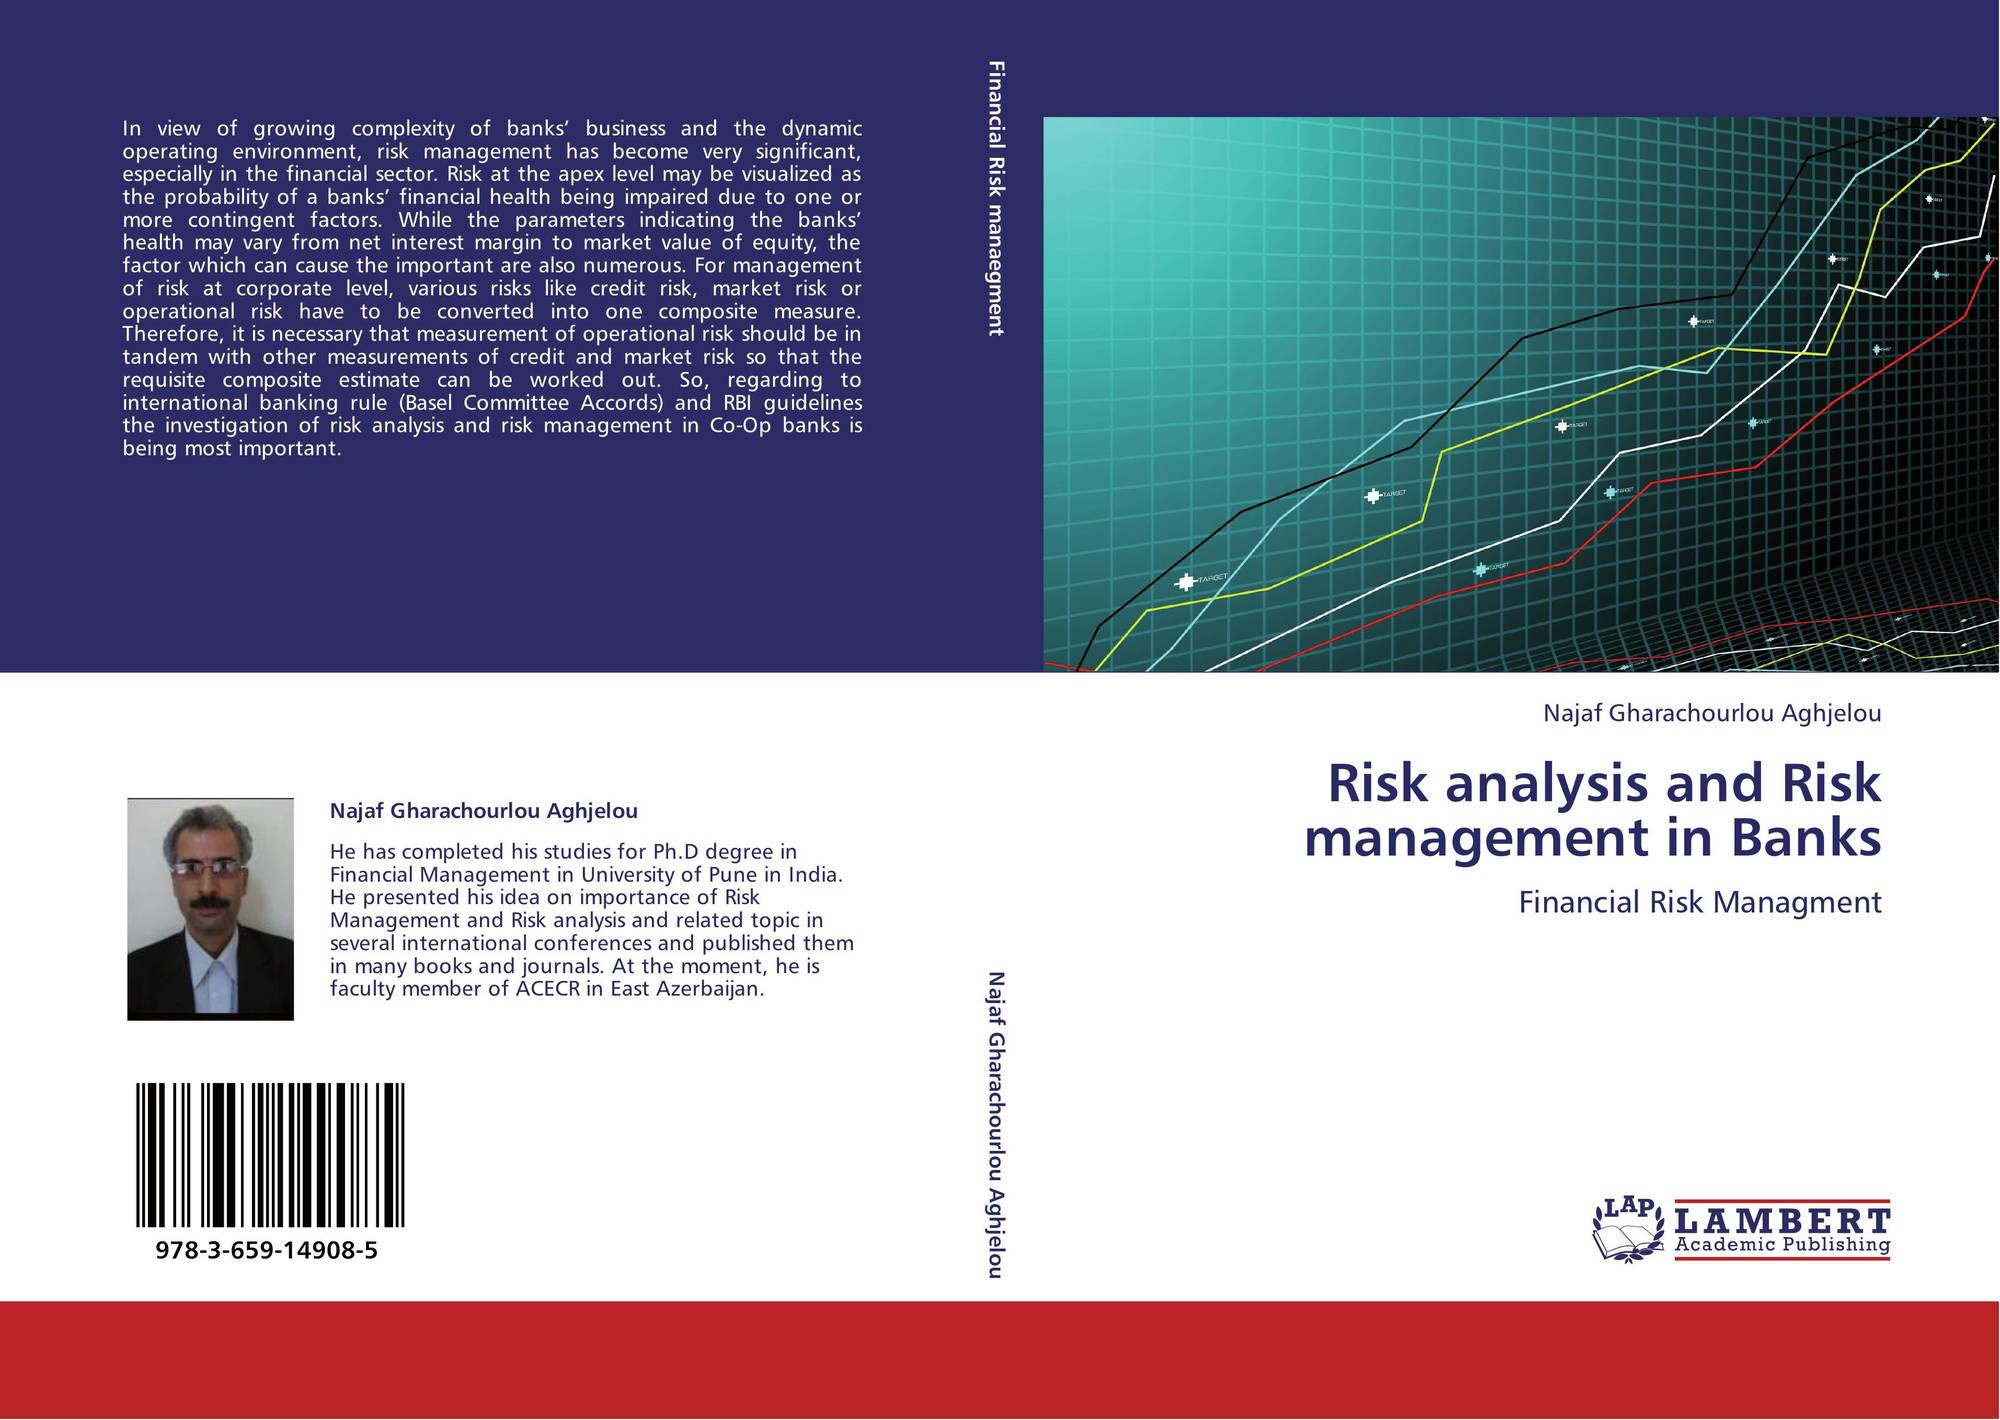 essays in banking and risk management Banking and risk management where perspectives meet the bis offers financial services to some 140 central banks and monetary authorities worldwide the bank's financial and operational risks are overseen by an independent, risk management function that is also responsible for ensuring an.